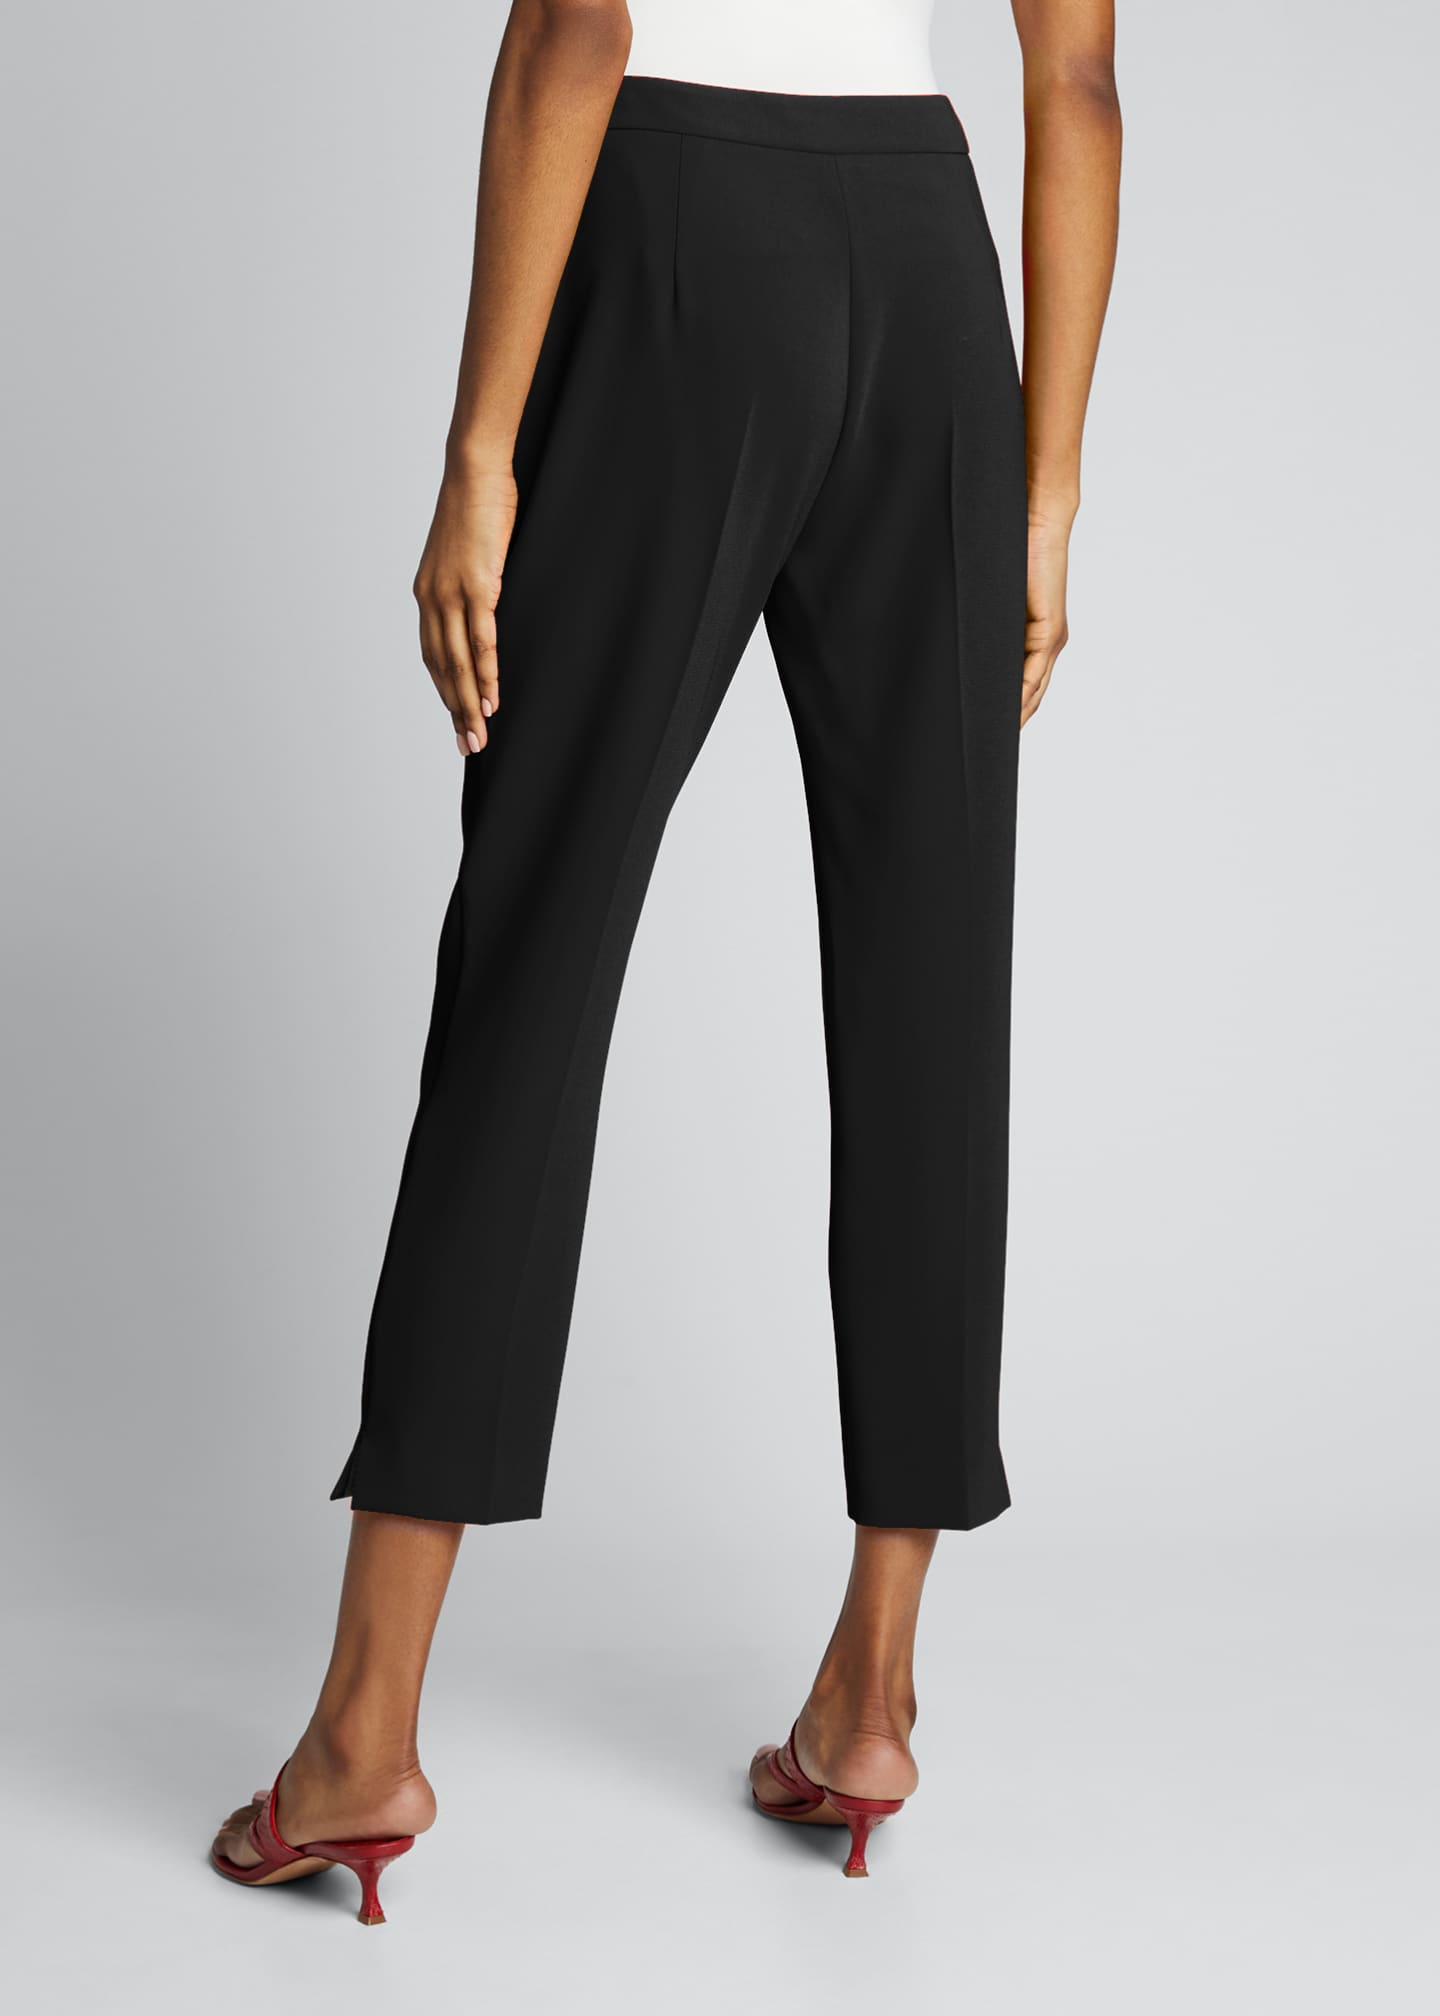 Image 2 of 5: Kerry Crepe Cropped Pants